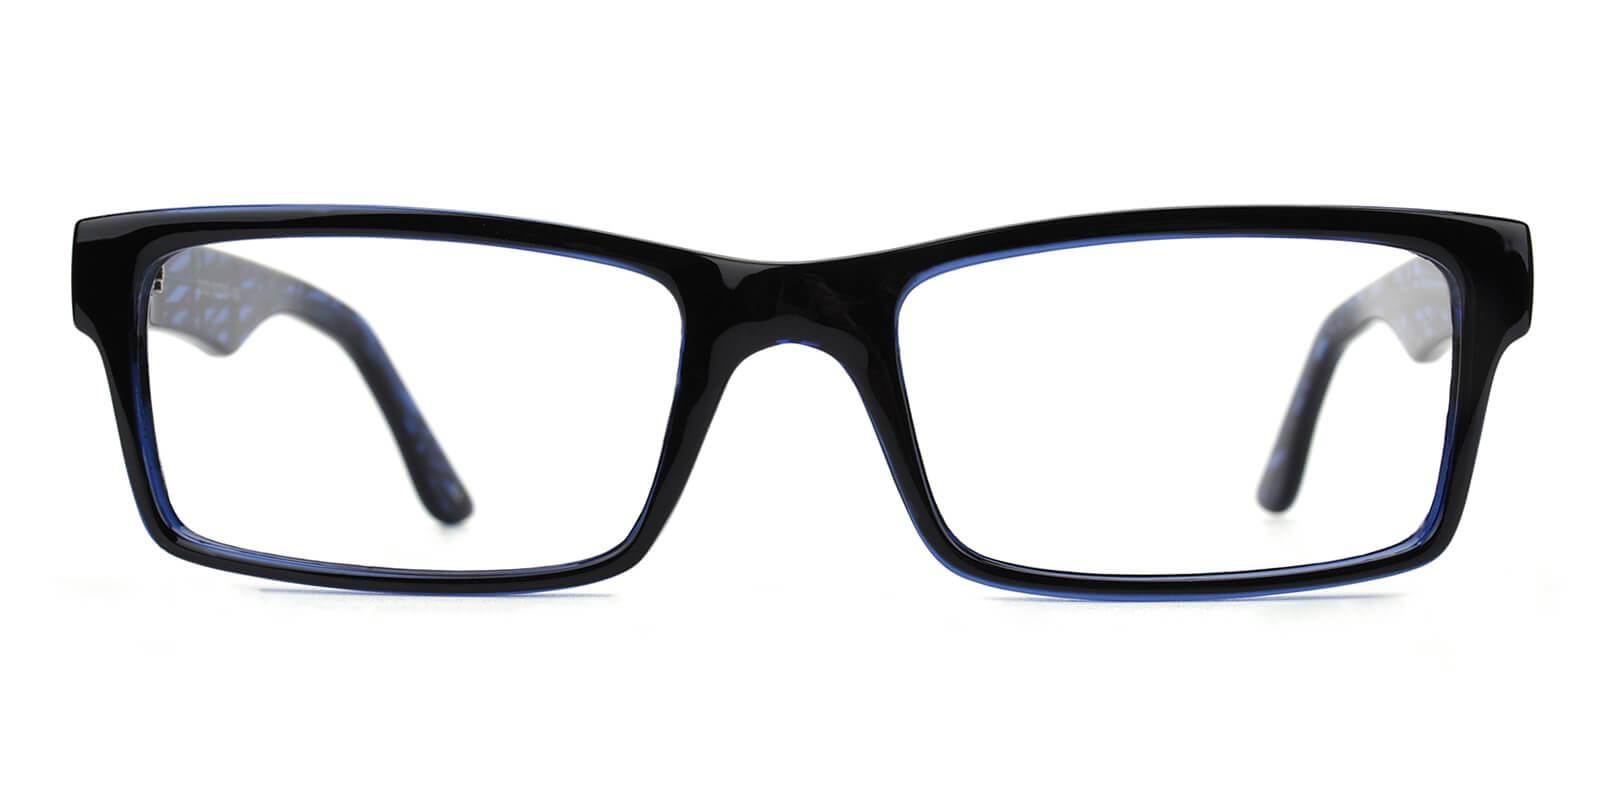 Moosern-Blue-Rectangle-Acetate-Eyeglasses-additional2